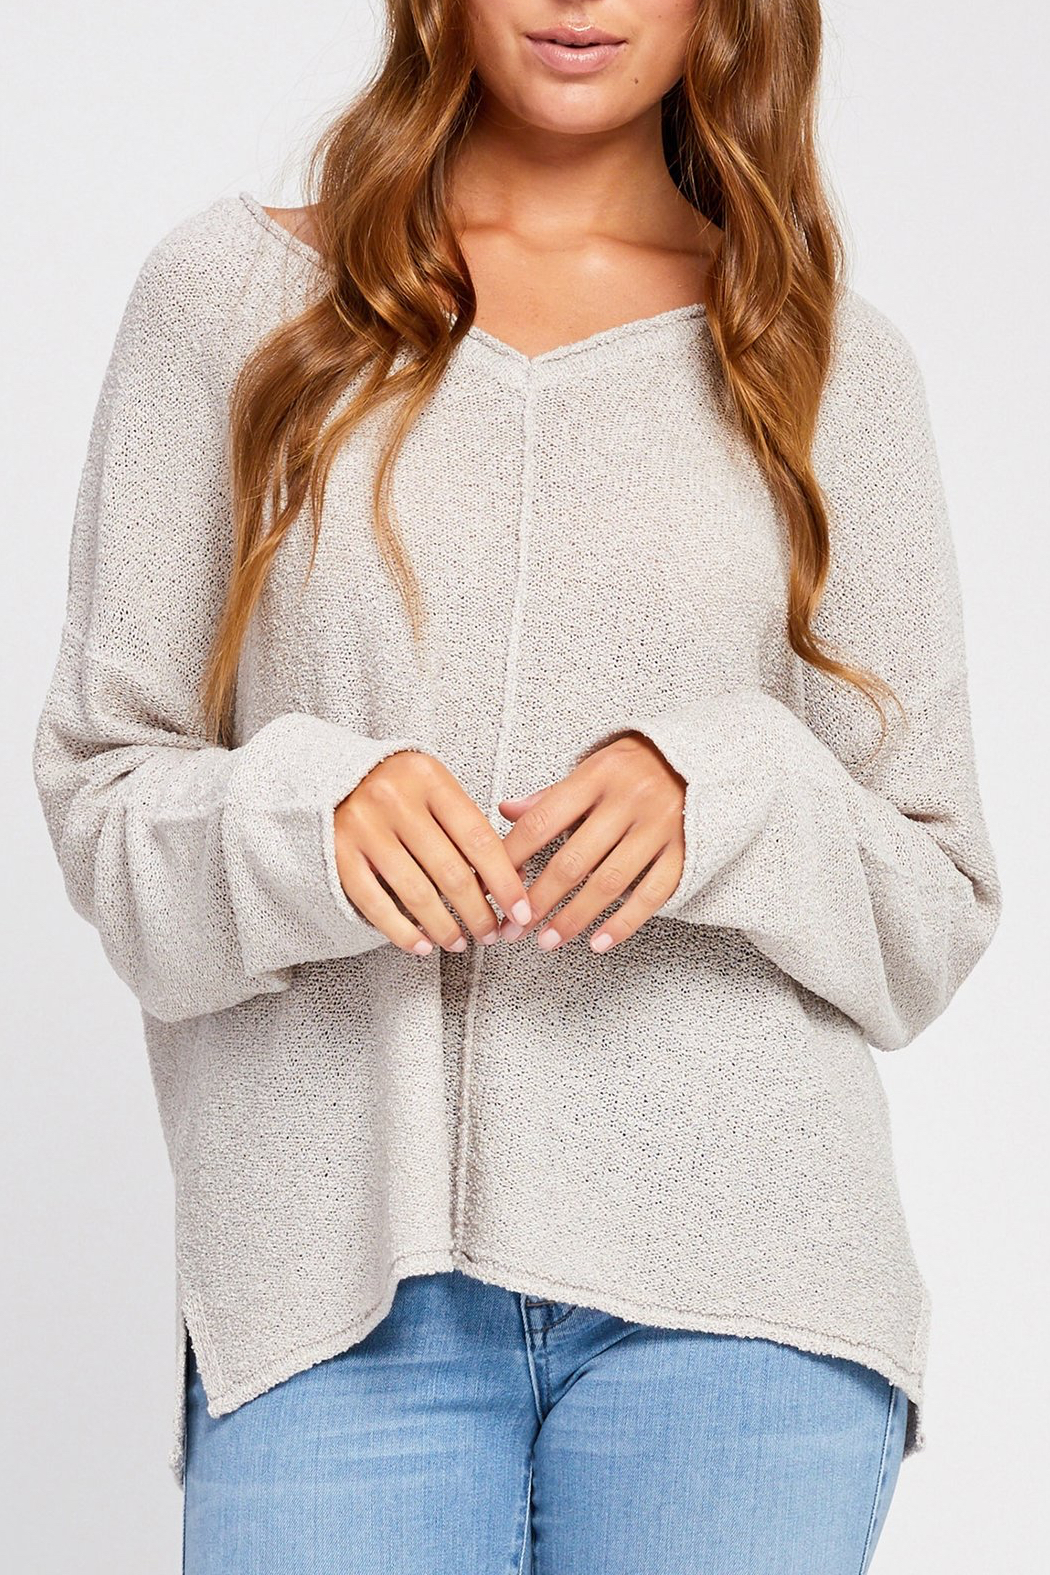 Gentle Fawn Florentine Loose Knit Sweater - Main Image